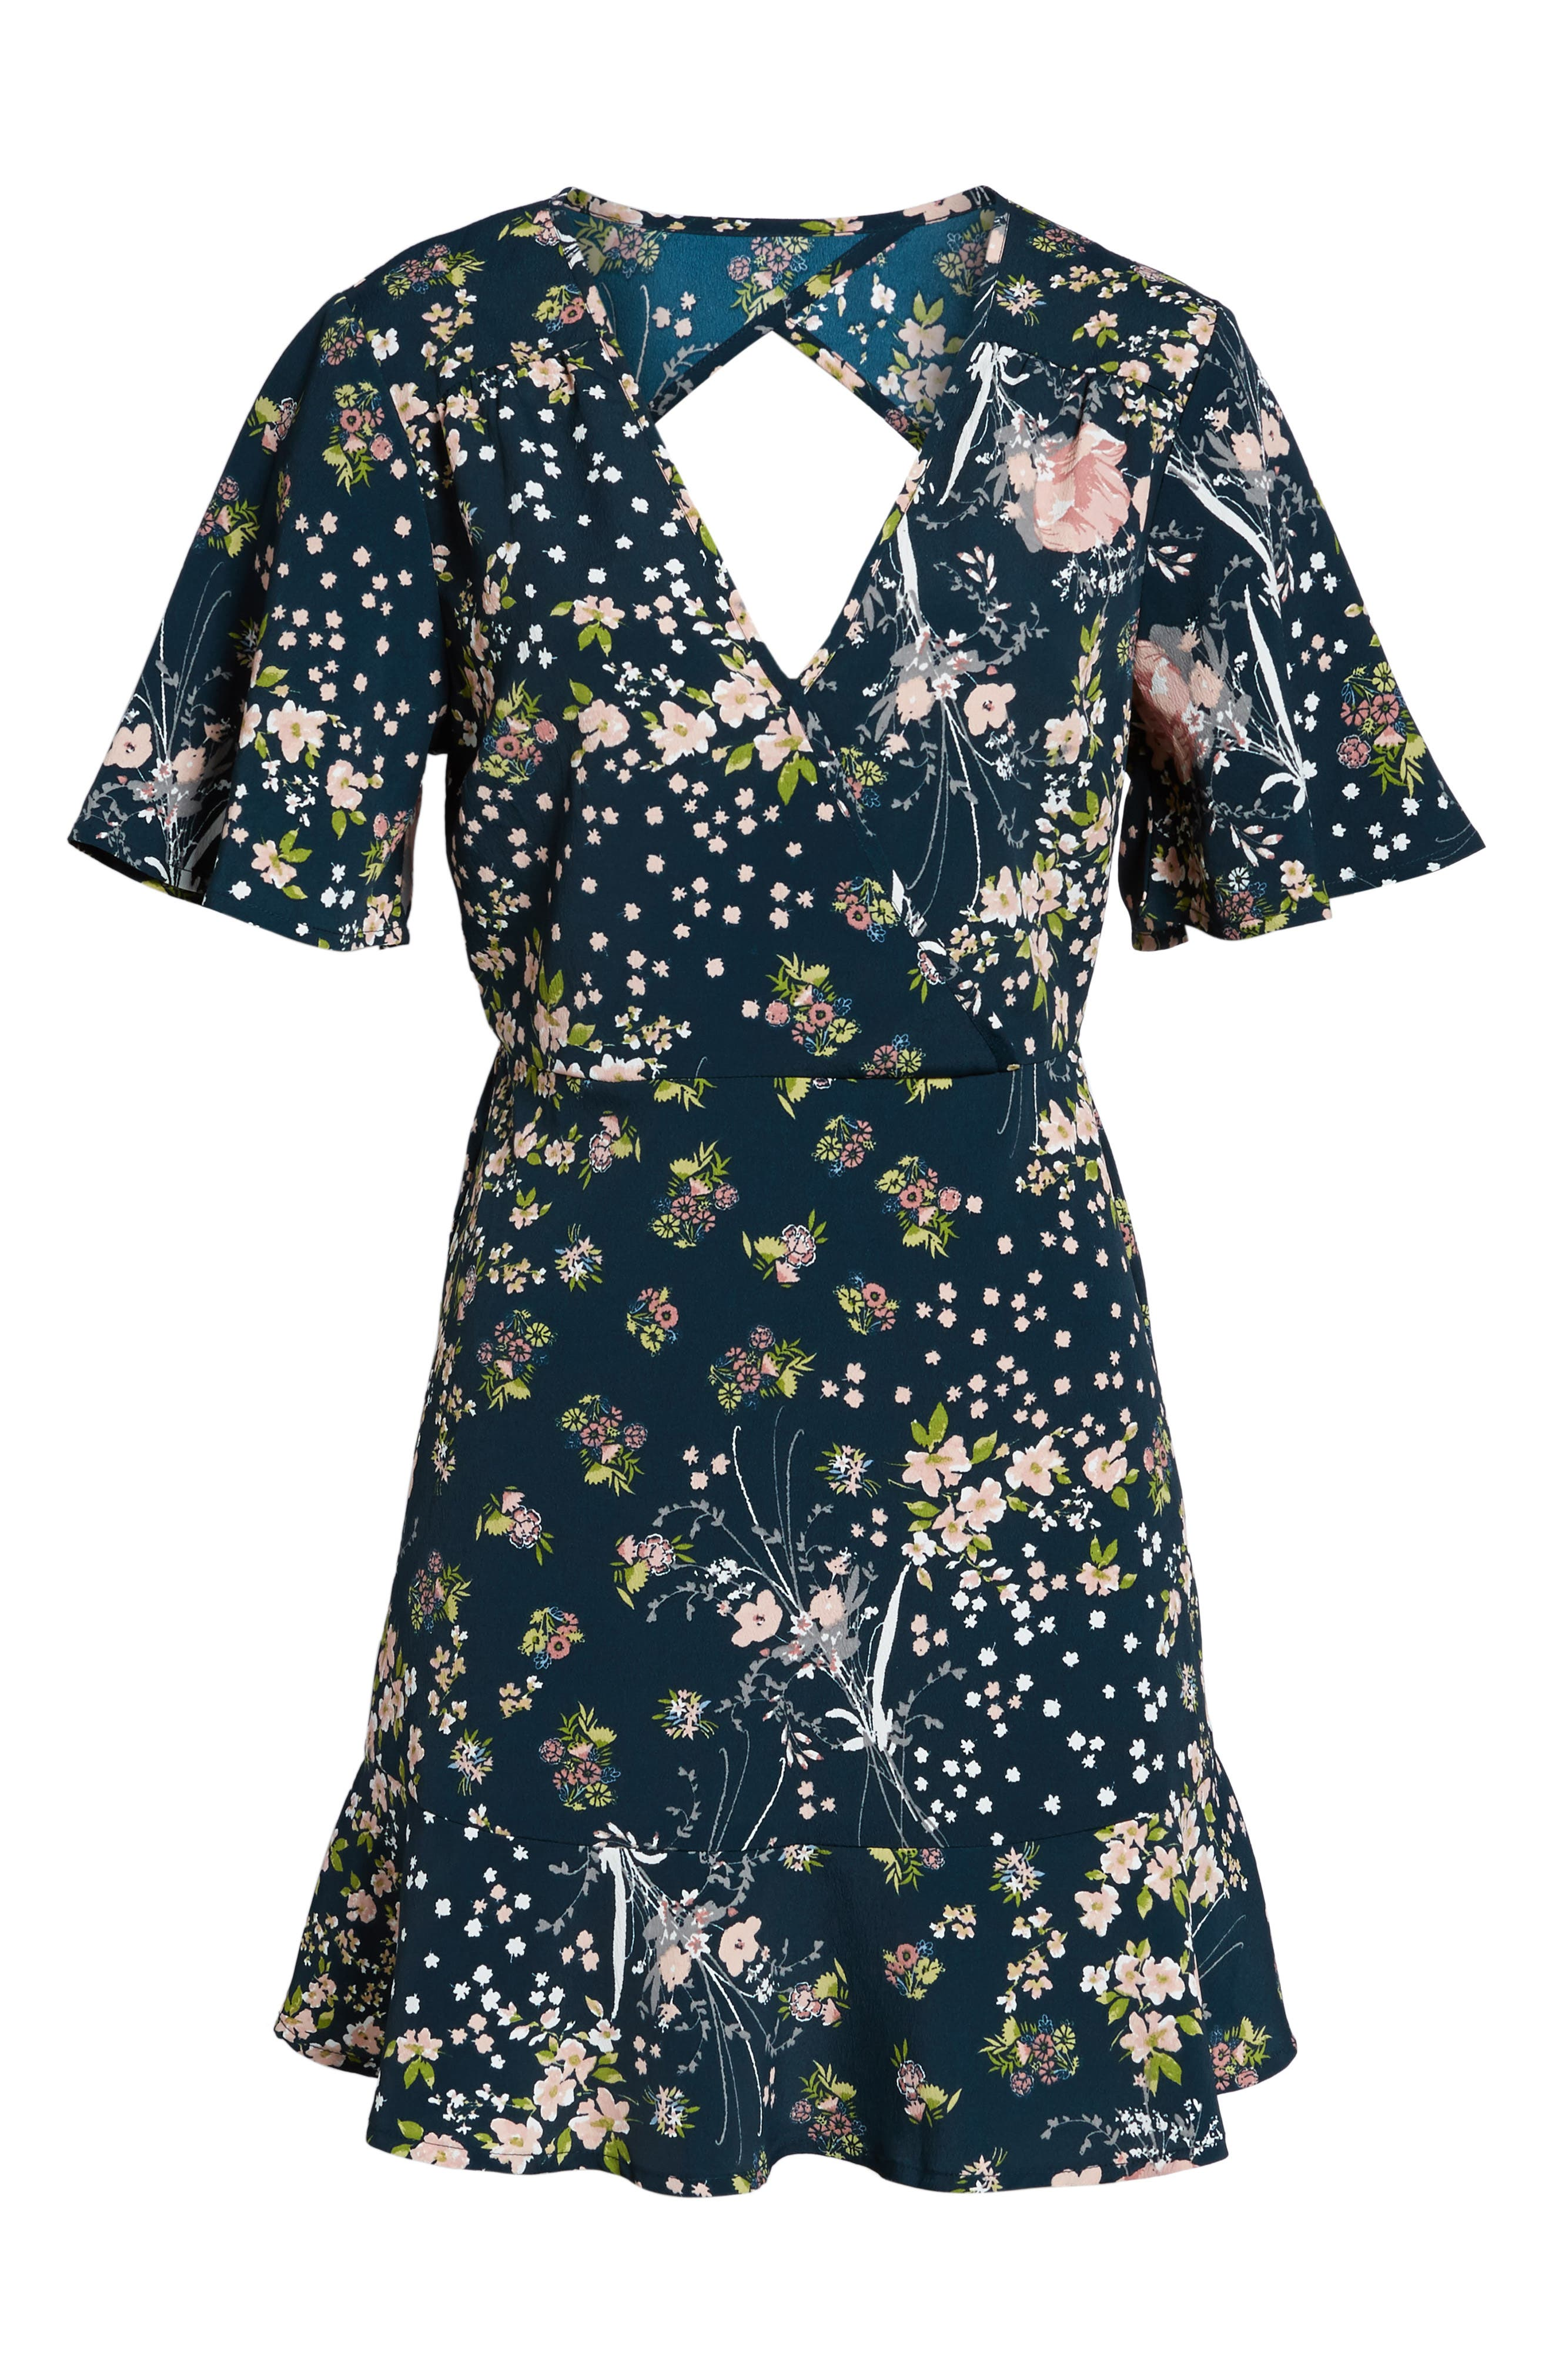 Moody Floral Dress,                             Alternate thumbnail 6, color,                             440